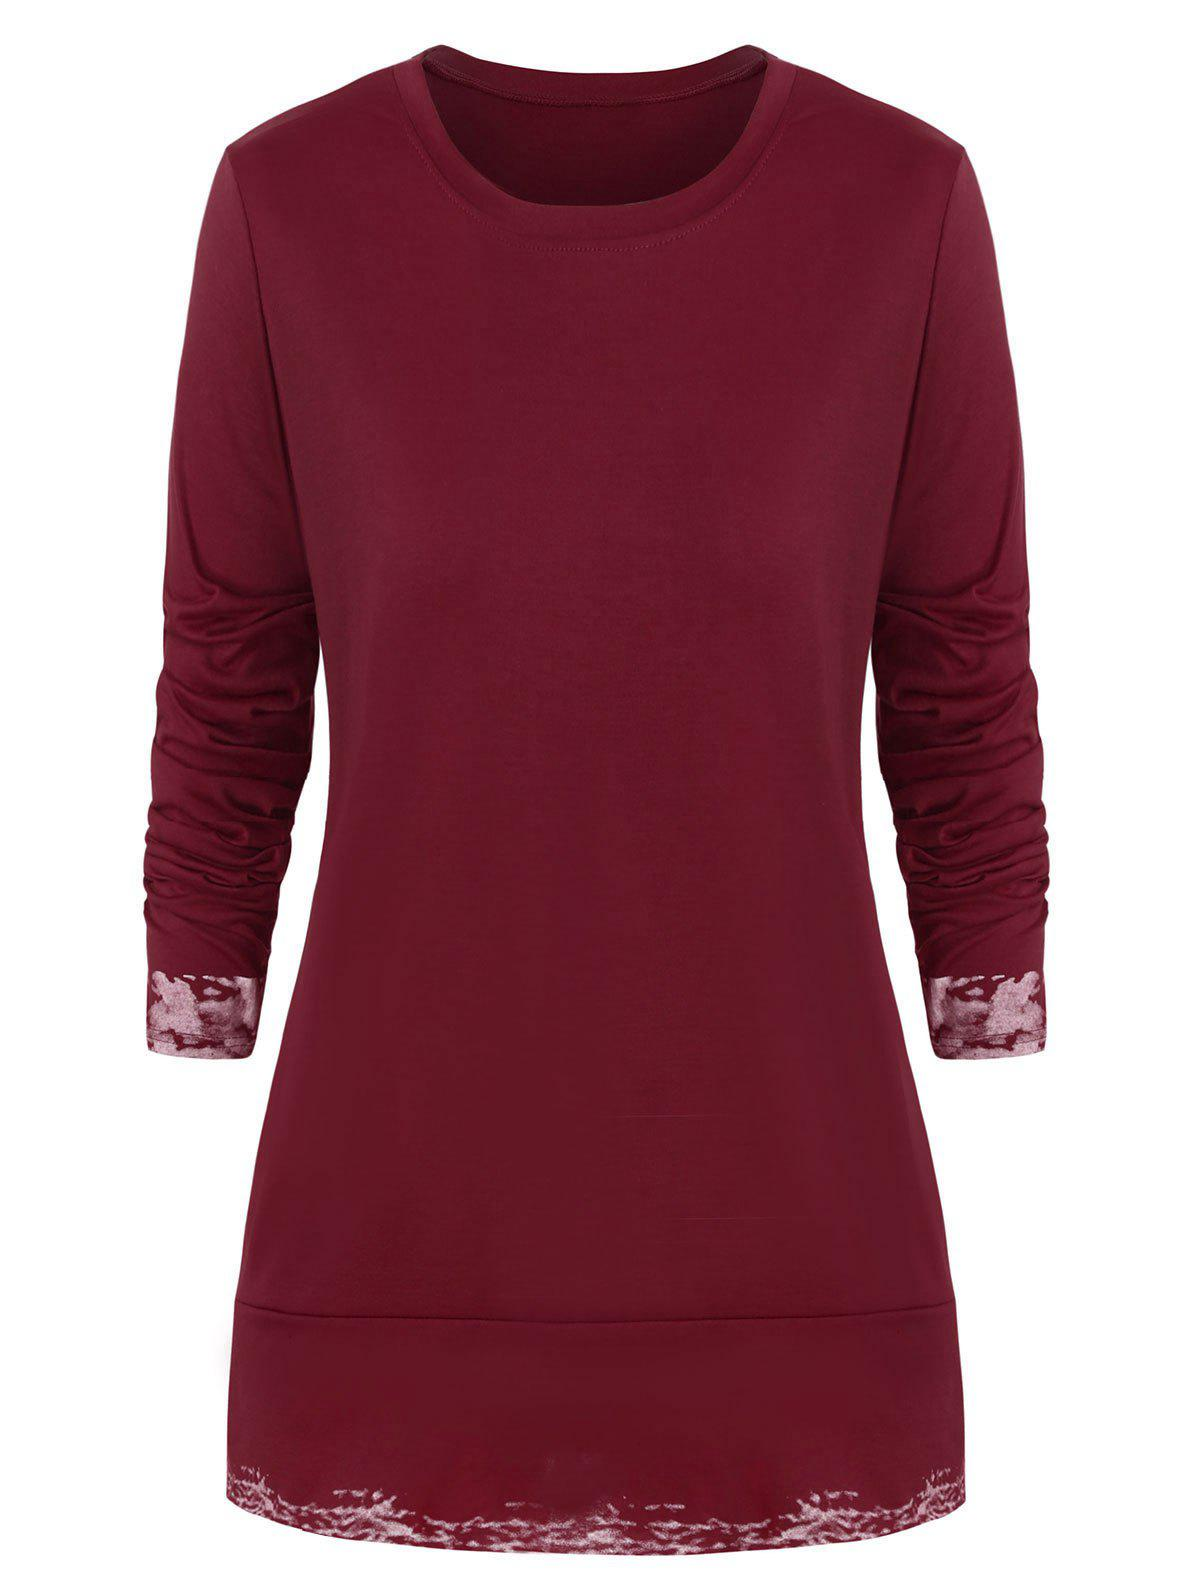 Plus Size Slits Printed Round Neck Tee - RED L